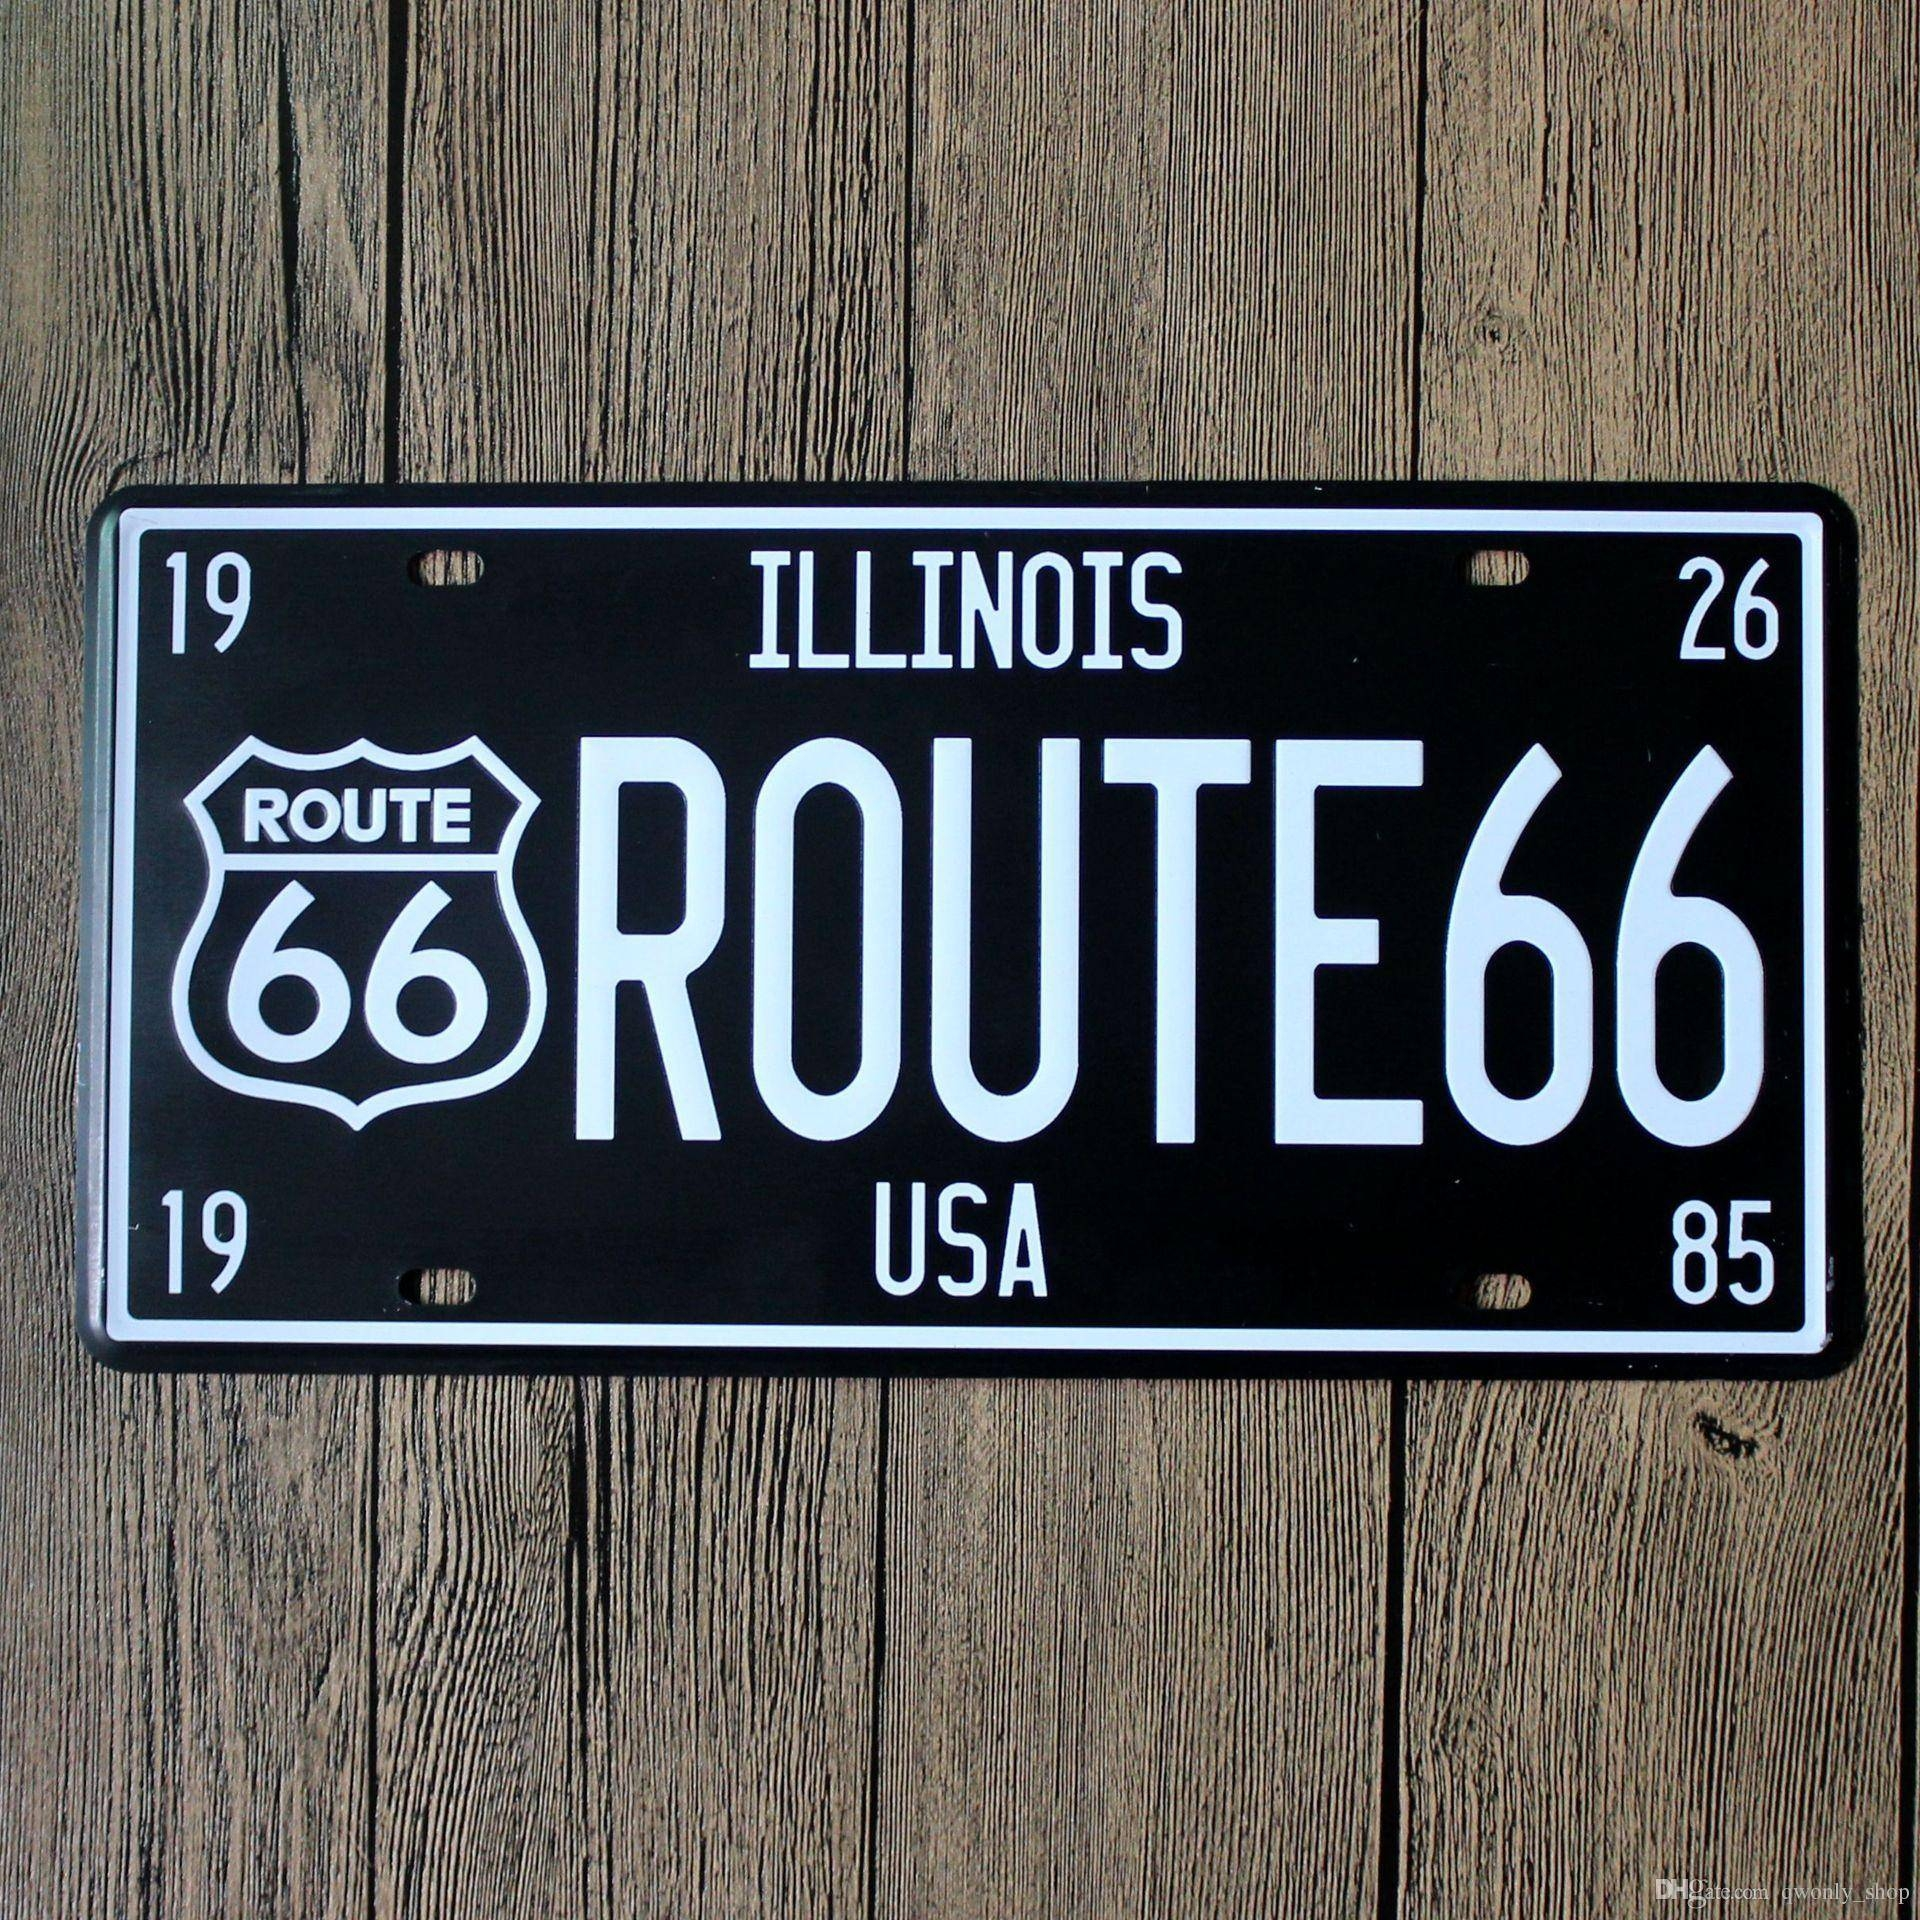 Route Usa 66 Vintage Craft Tin Sign Retro Metal Painting Antique Within Most Recent Retro Metal Wall Art (Gallery 18 of 20)